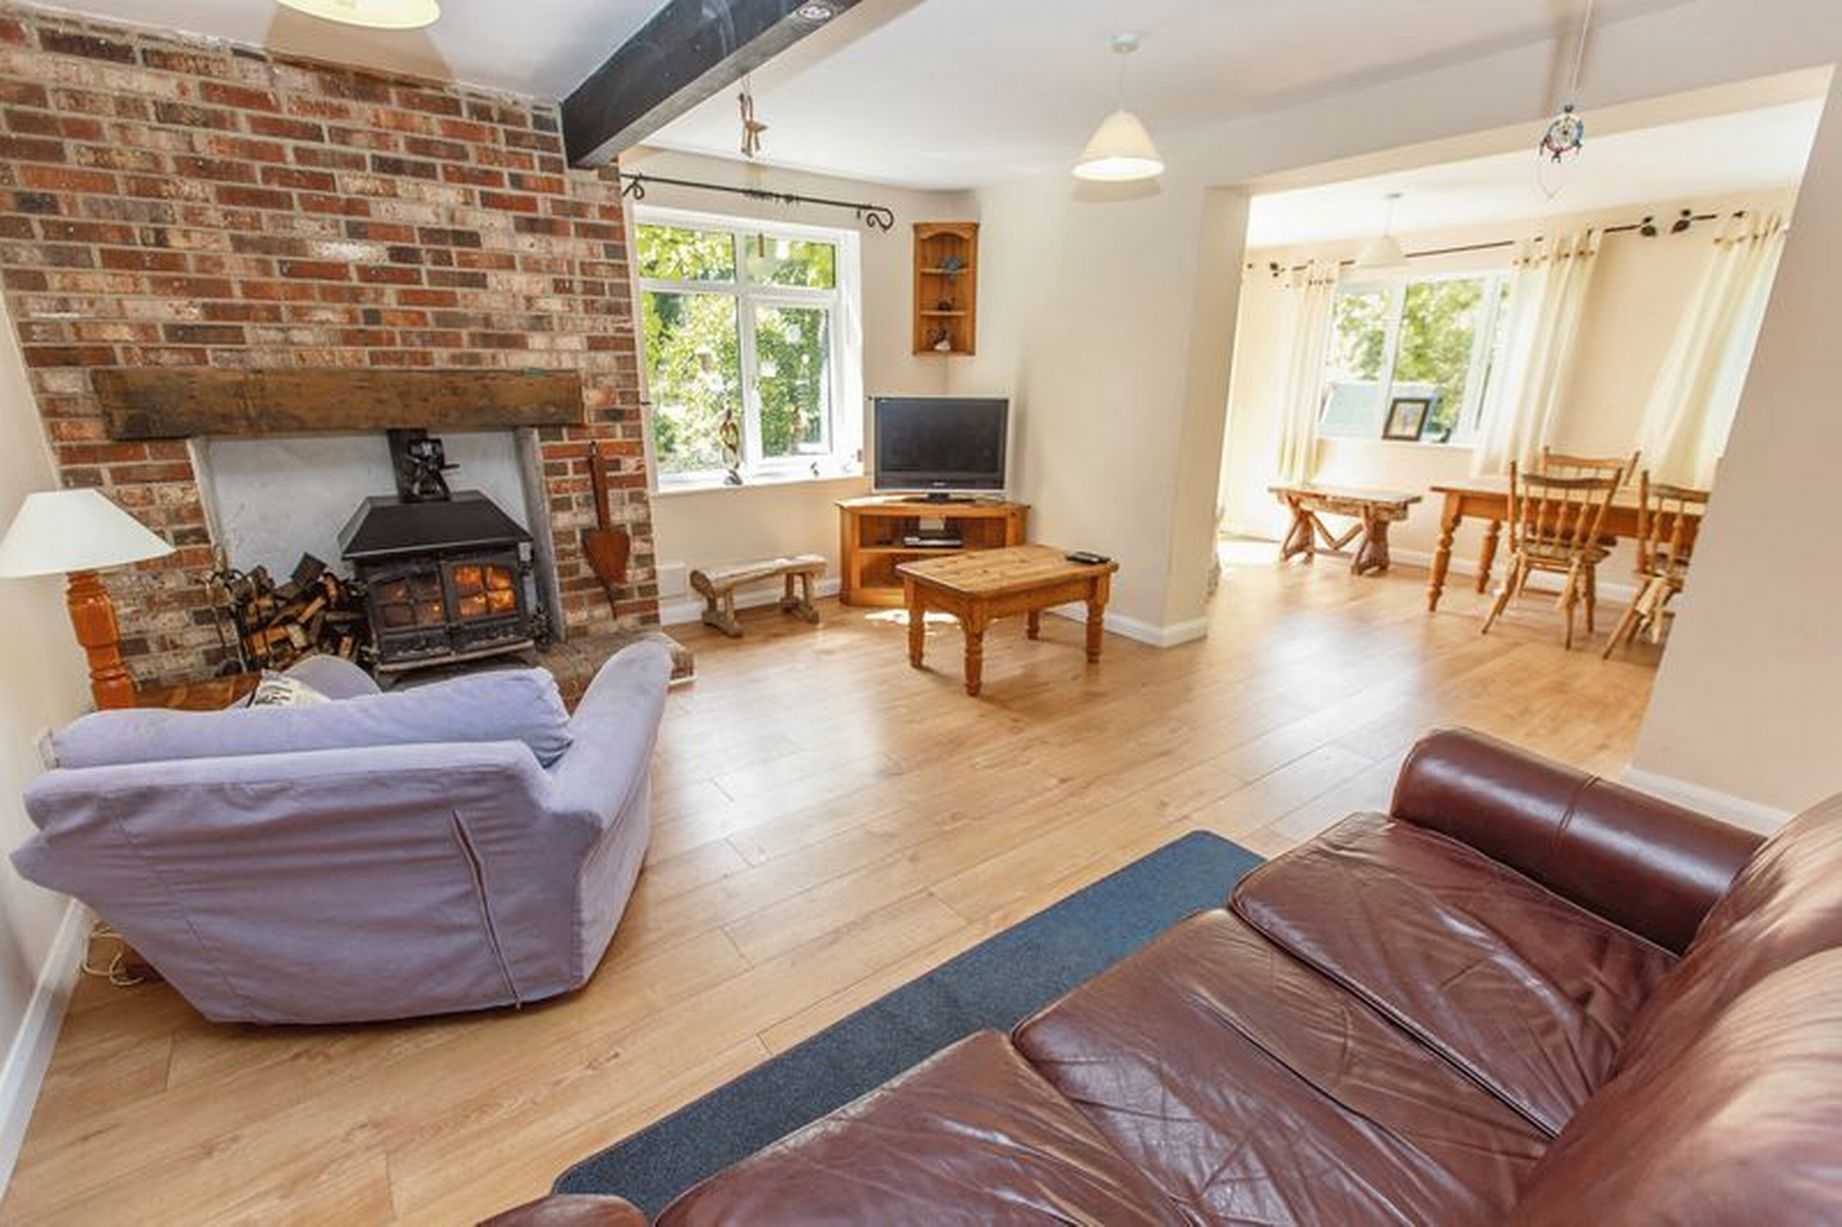 Sofa Gumtree Paignton Take A Look Around This Fantastic House Hidden In A Devon Forest